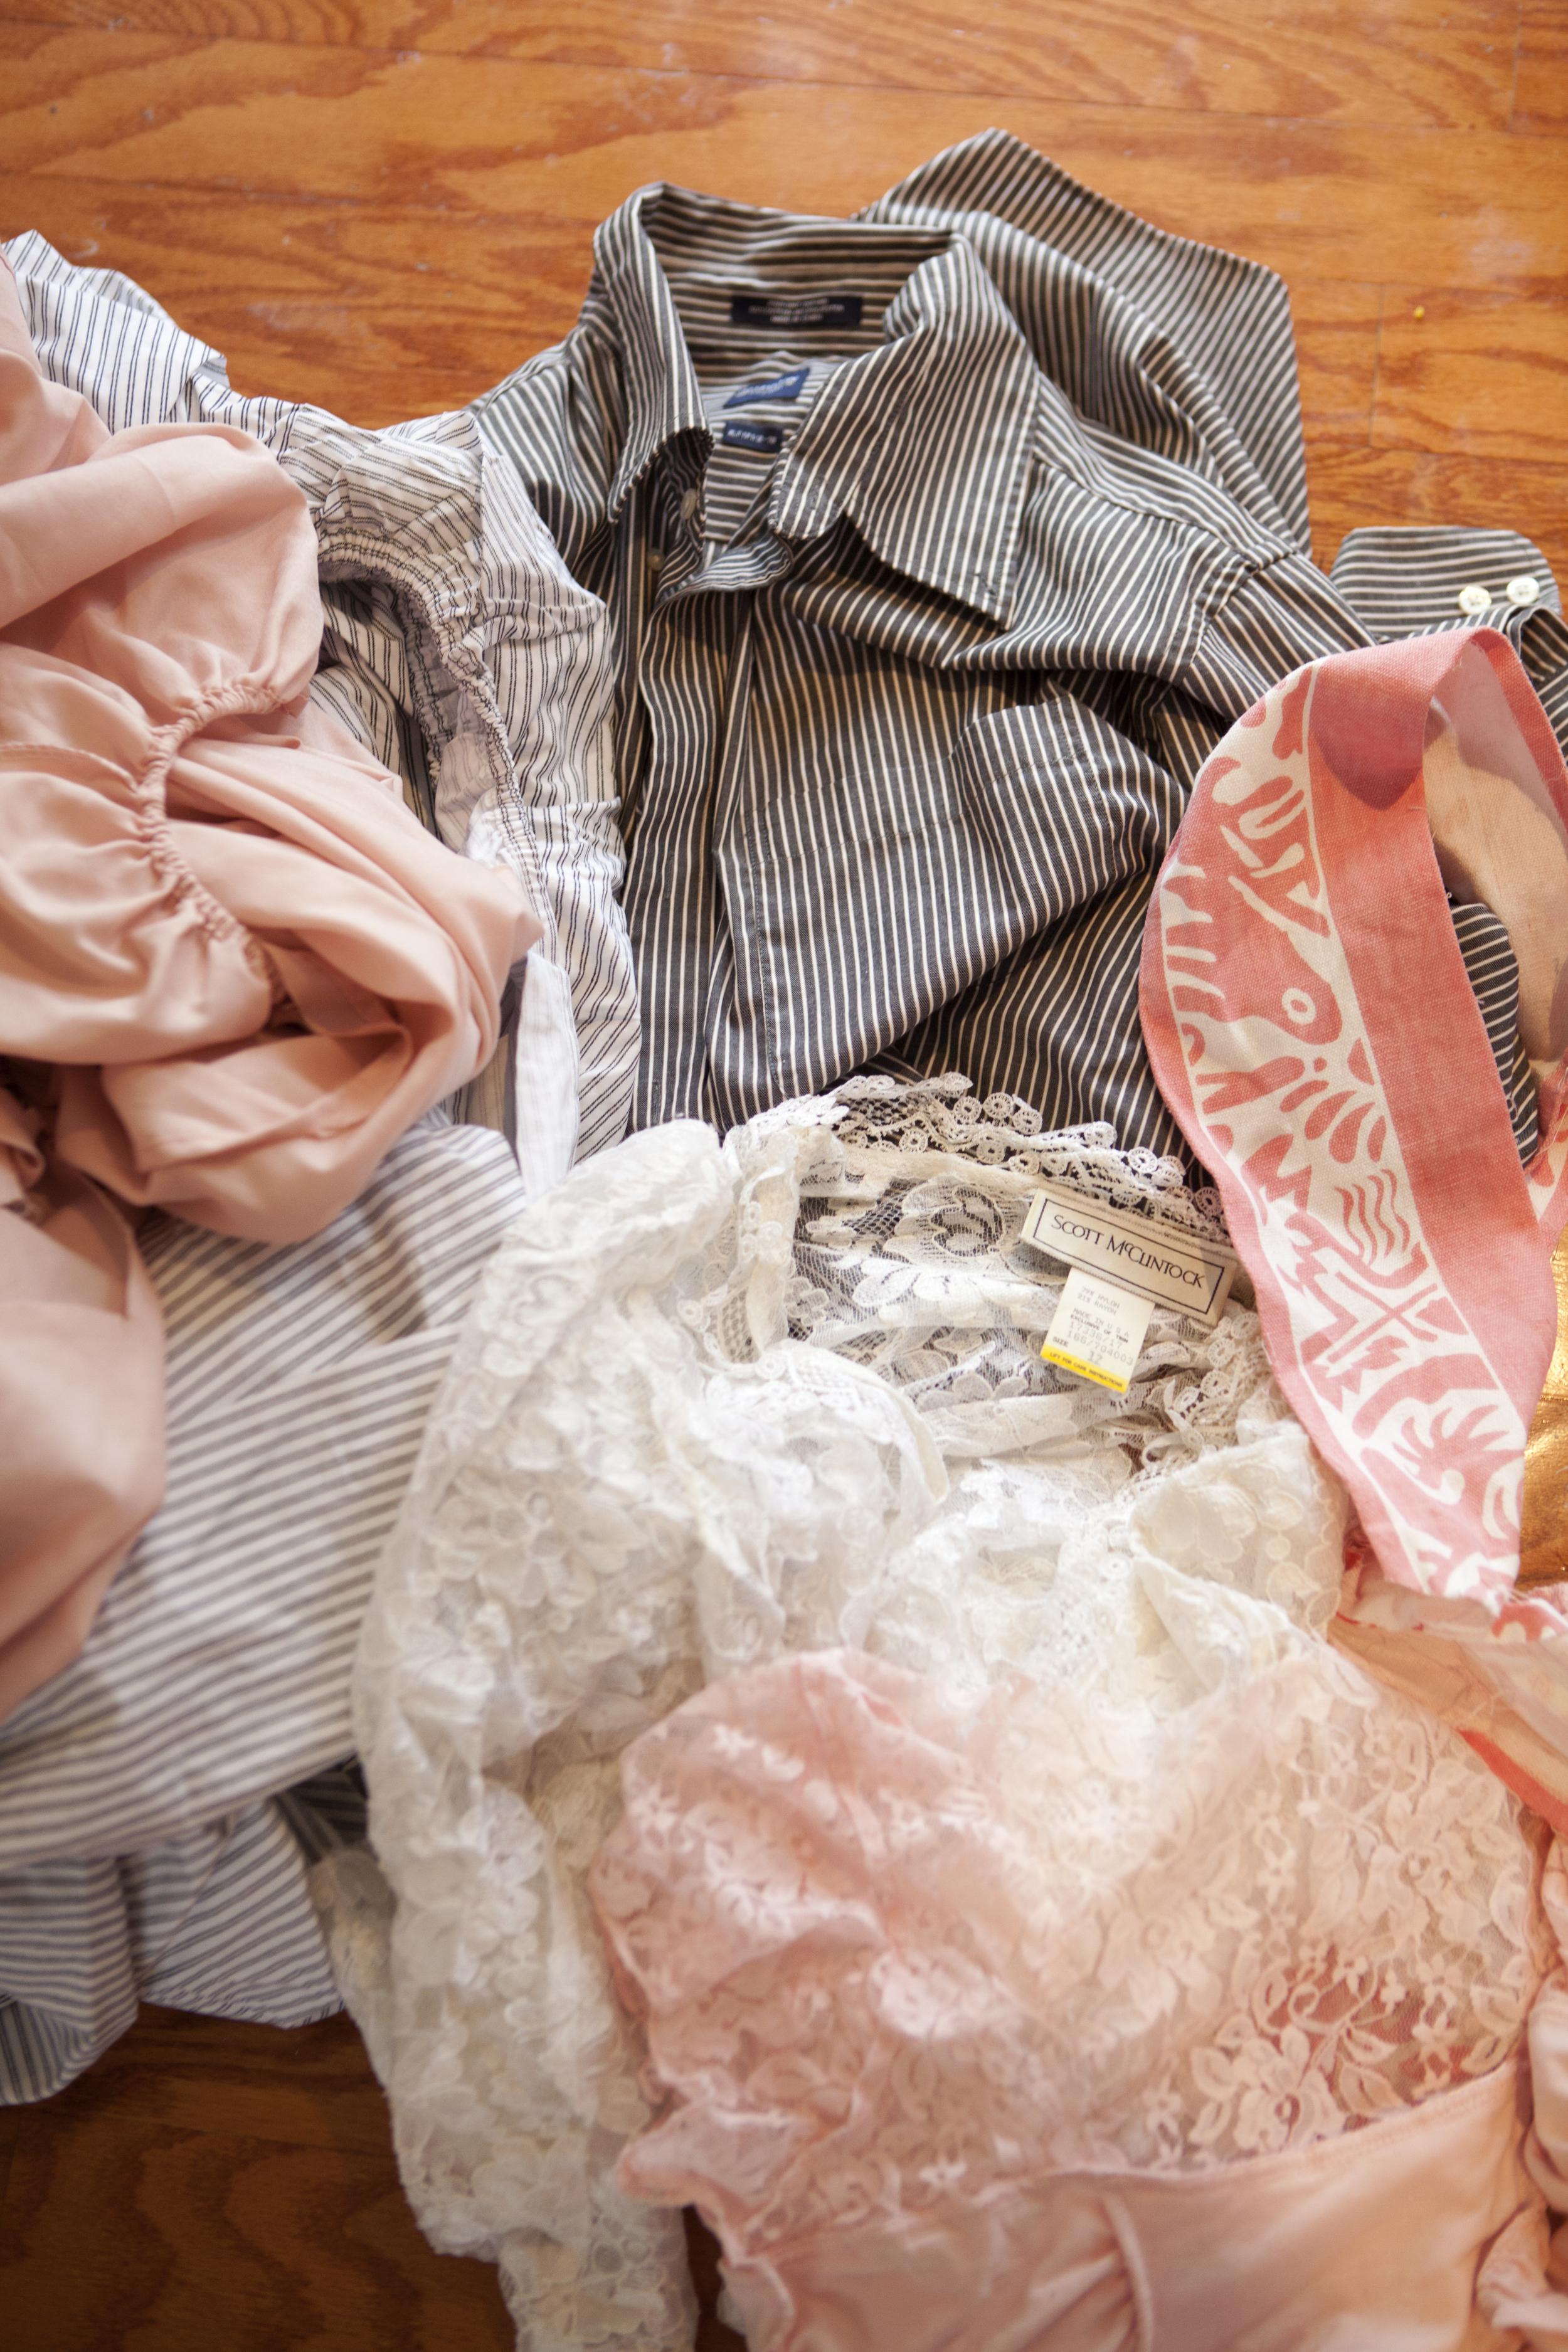 Here is a look at my fabric pile that fit our color scheme of greys and pinks: 2 fitted sheets, one men's button up,  and the pink and white pattern was a table cloth border.